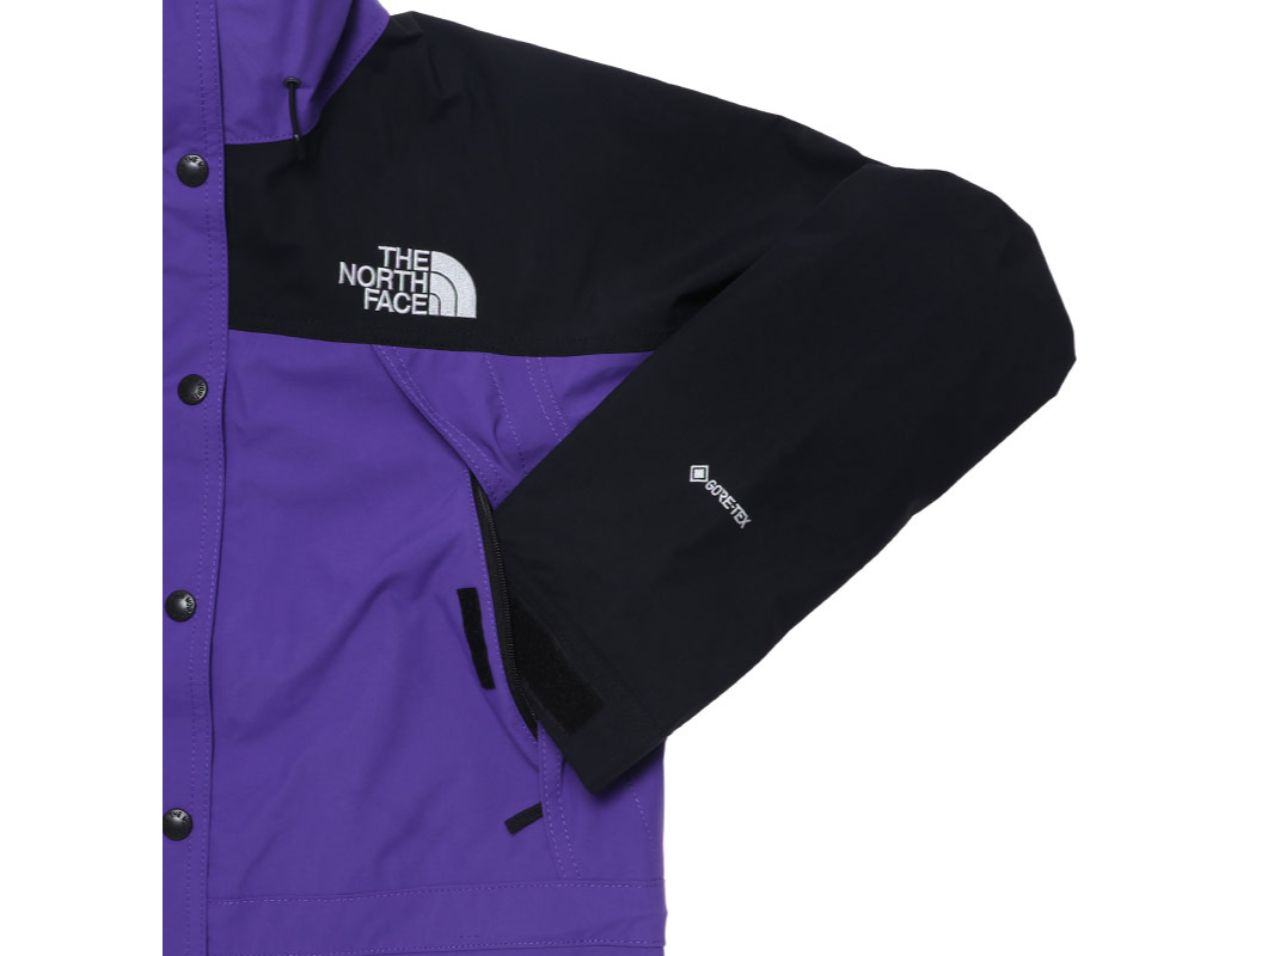 THE NORTH FACE Womens Mountain Light Jacket - NPW61831